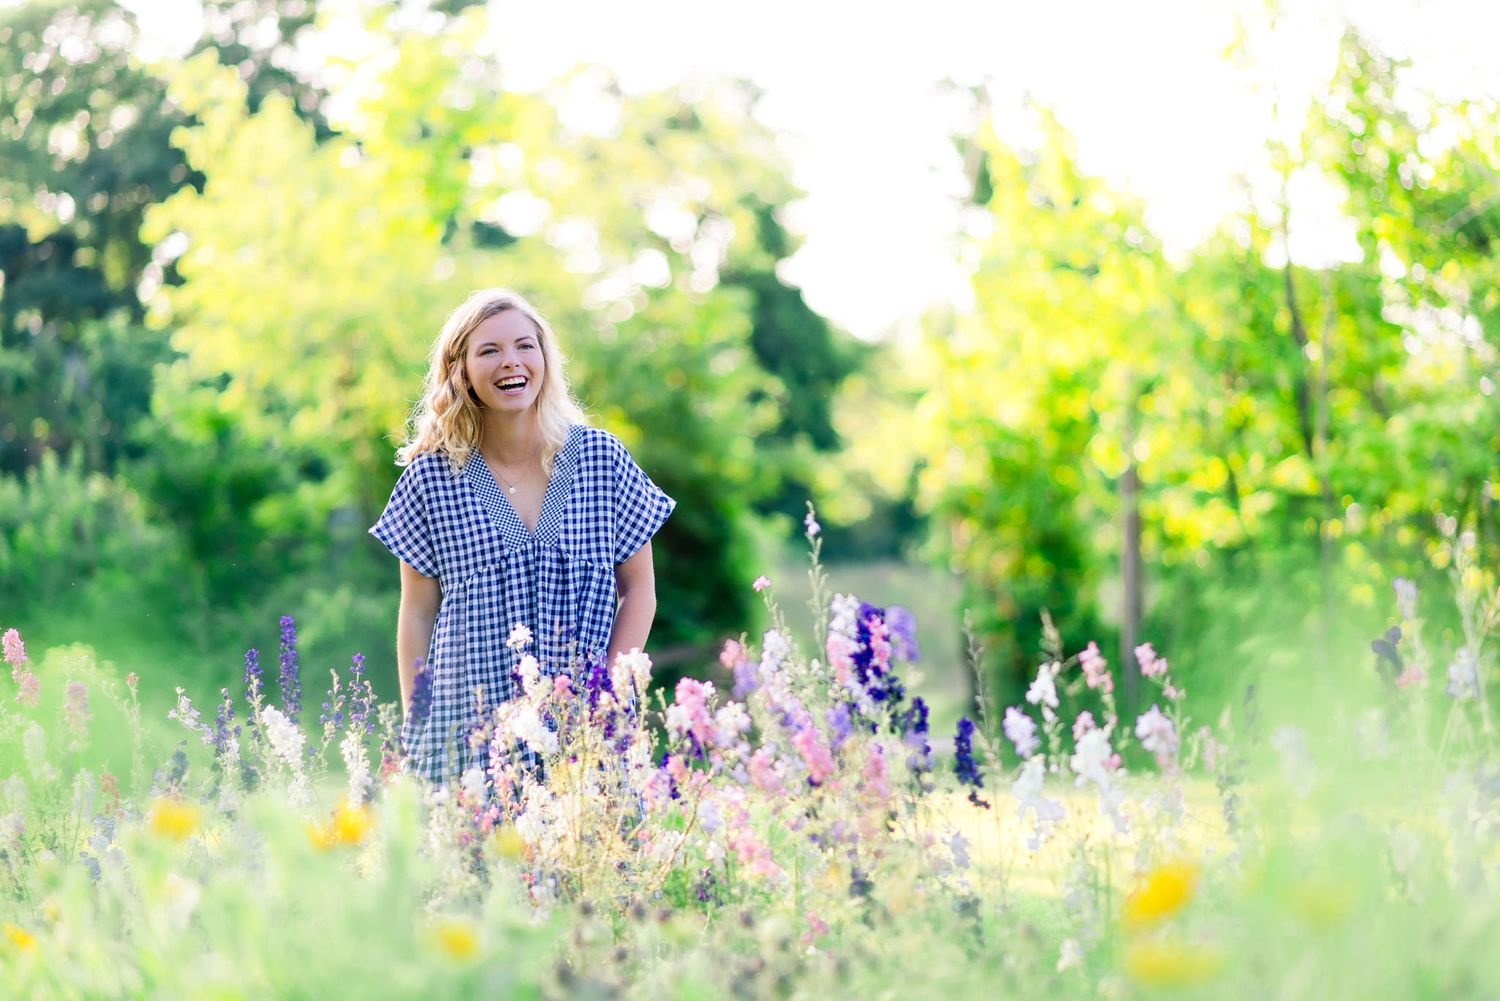 young woman laughing in field of flowers at The Marmalade Lily in Cincinnati OH for summer senior pictures